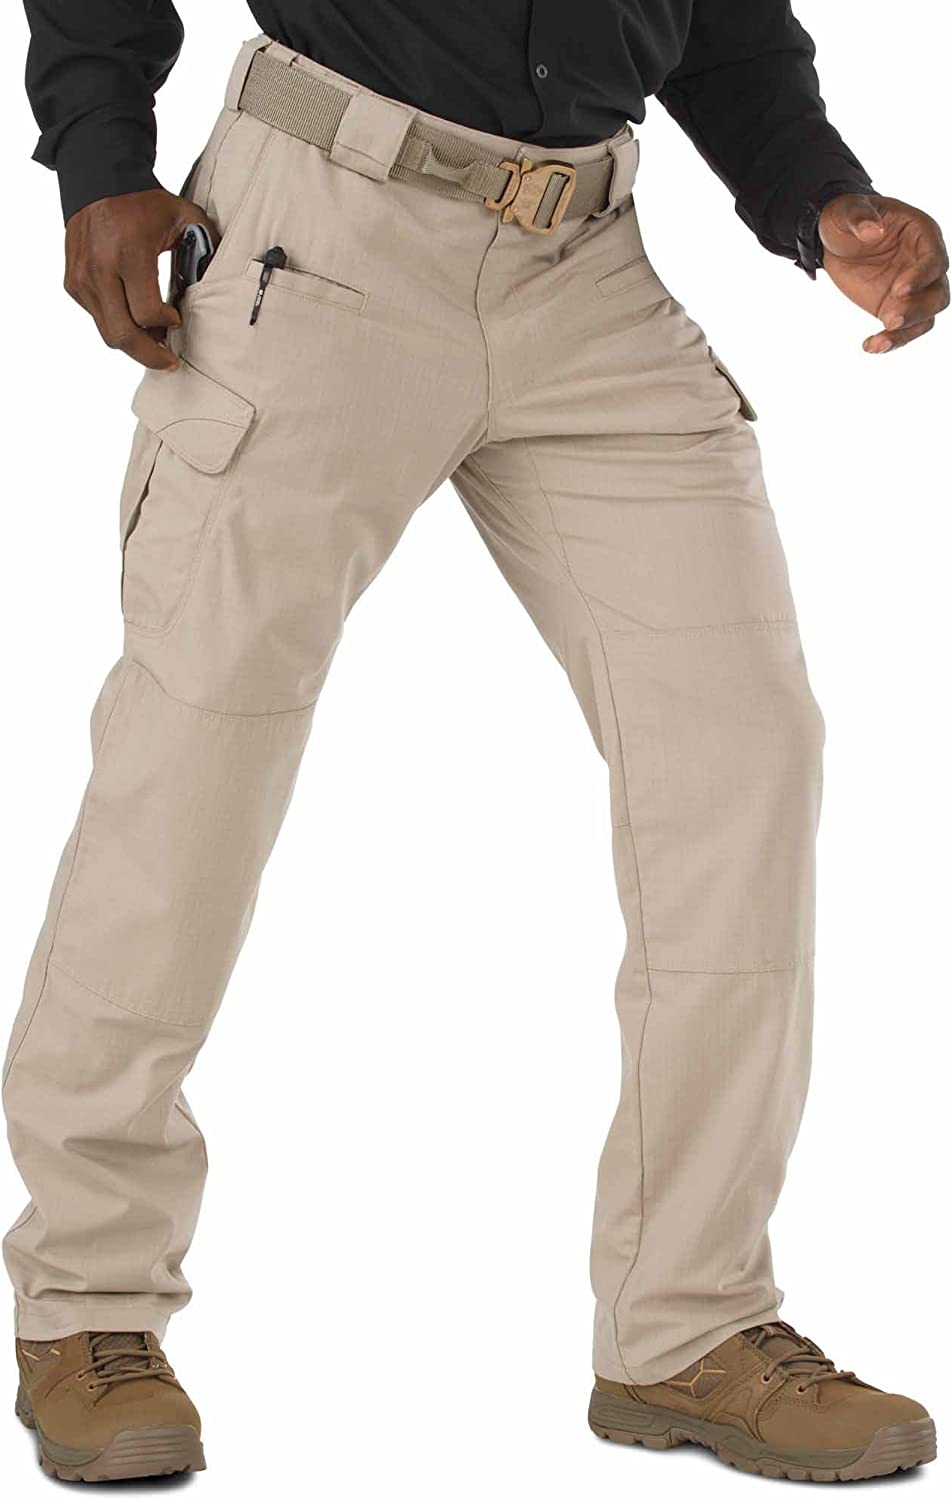 5.11 Tactical Mens Stryke Military Pants, Cargo Pockets, Stretchable Flex-Tac Fabric, Style 74369